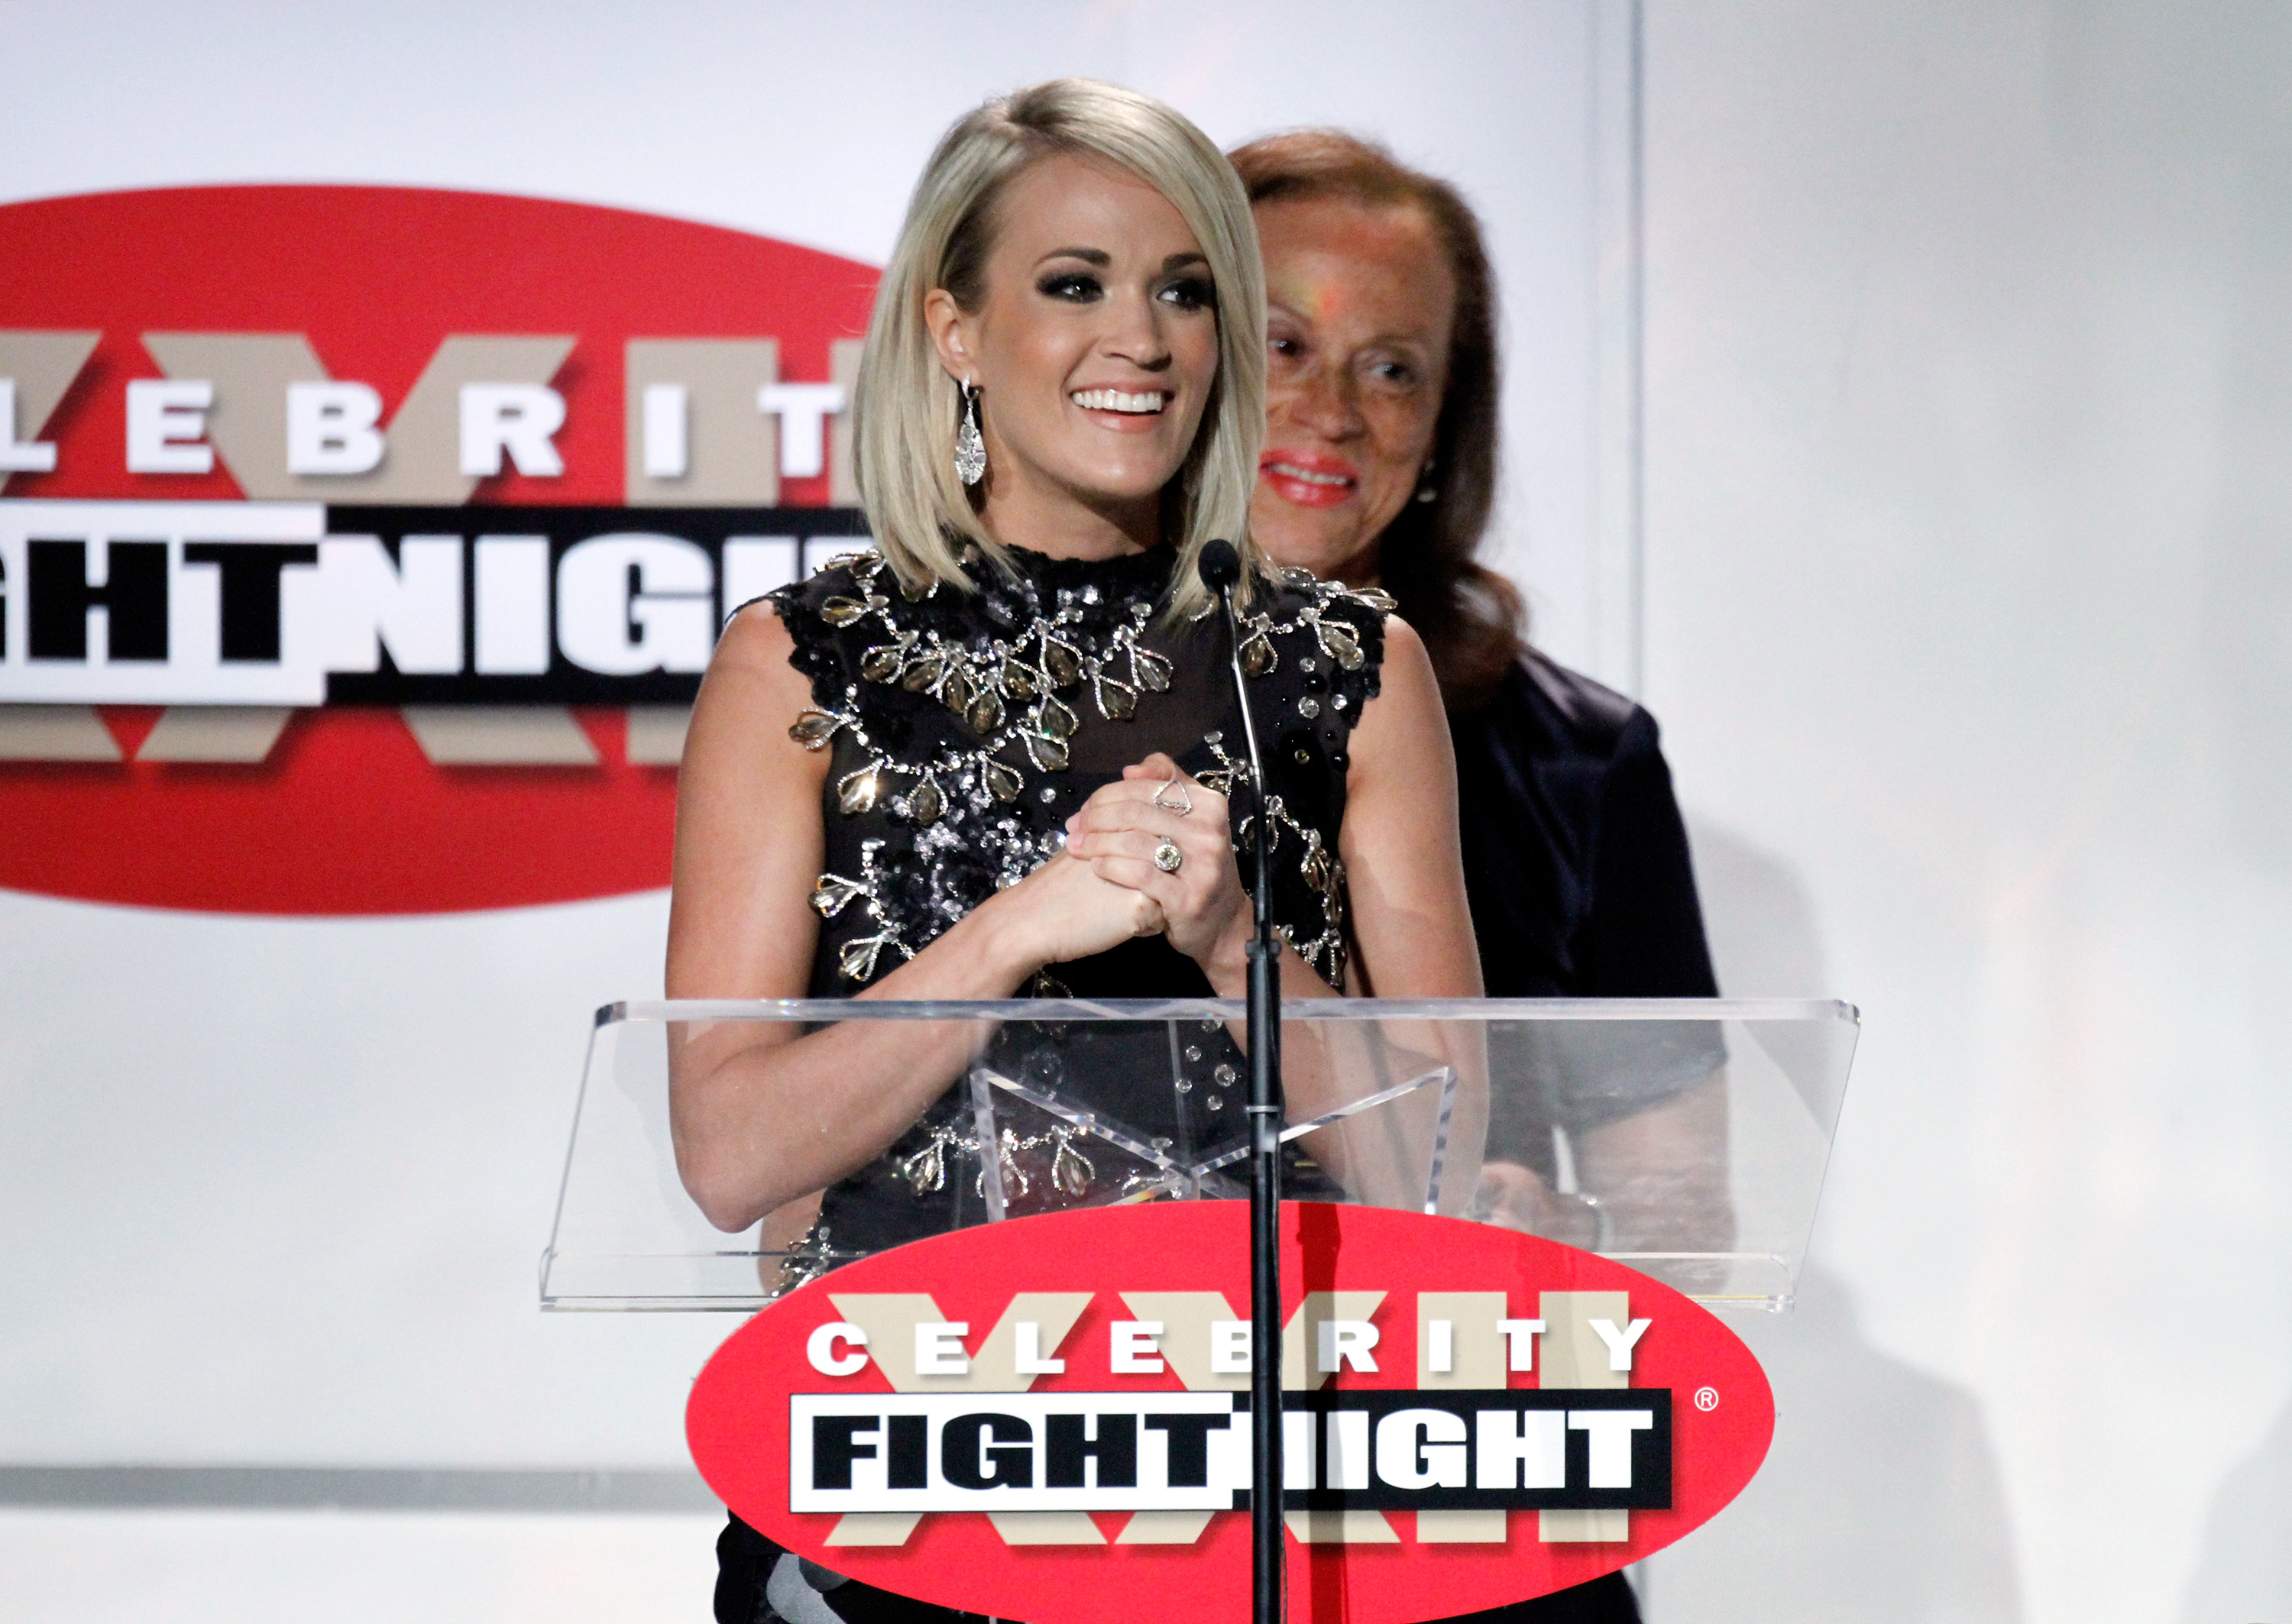 Carrie receiving The Muhammad Ali Celebrity Fight Night Award